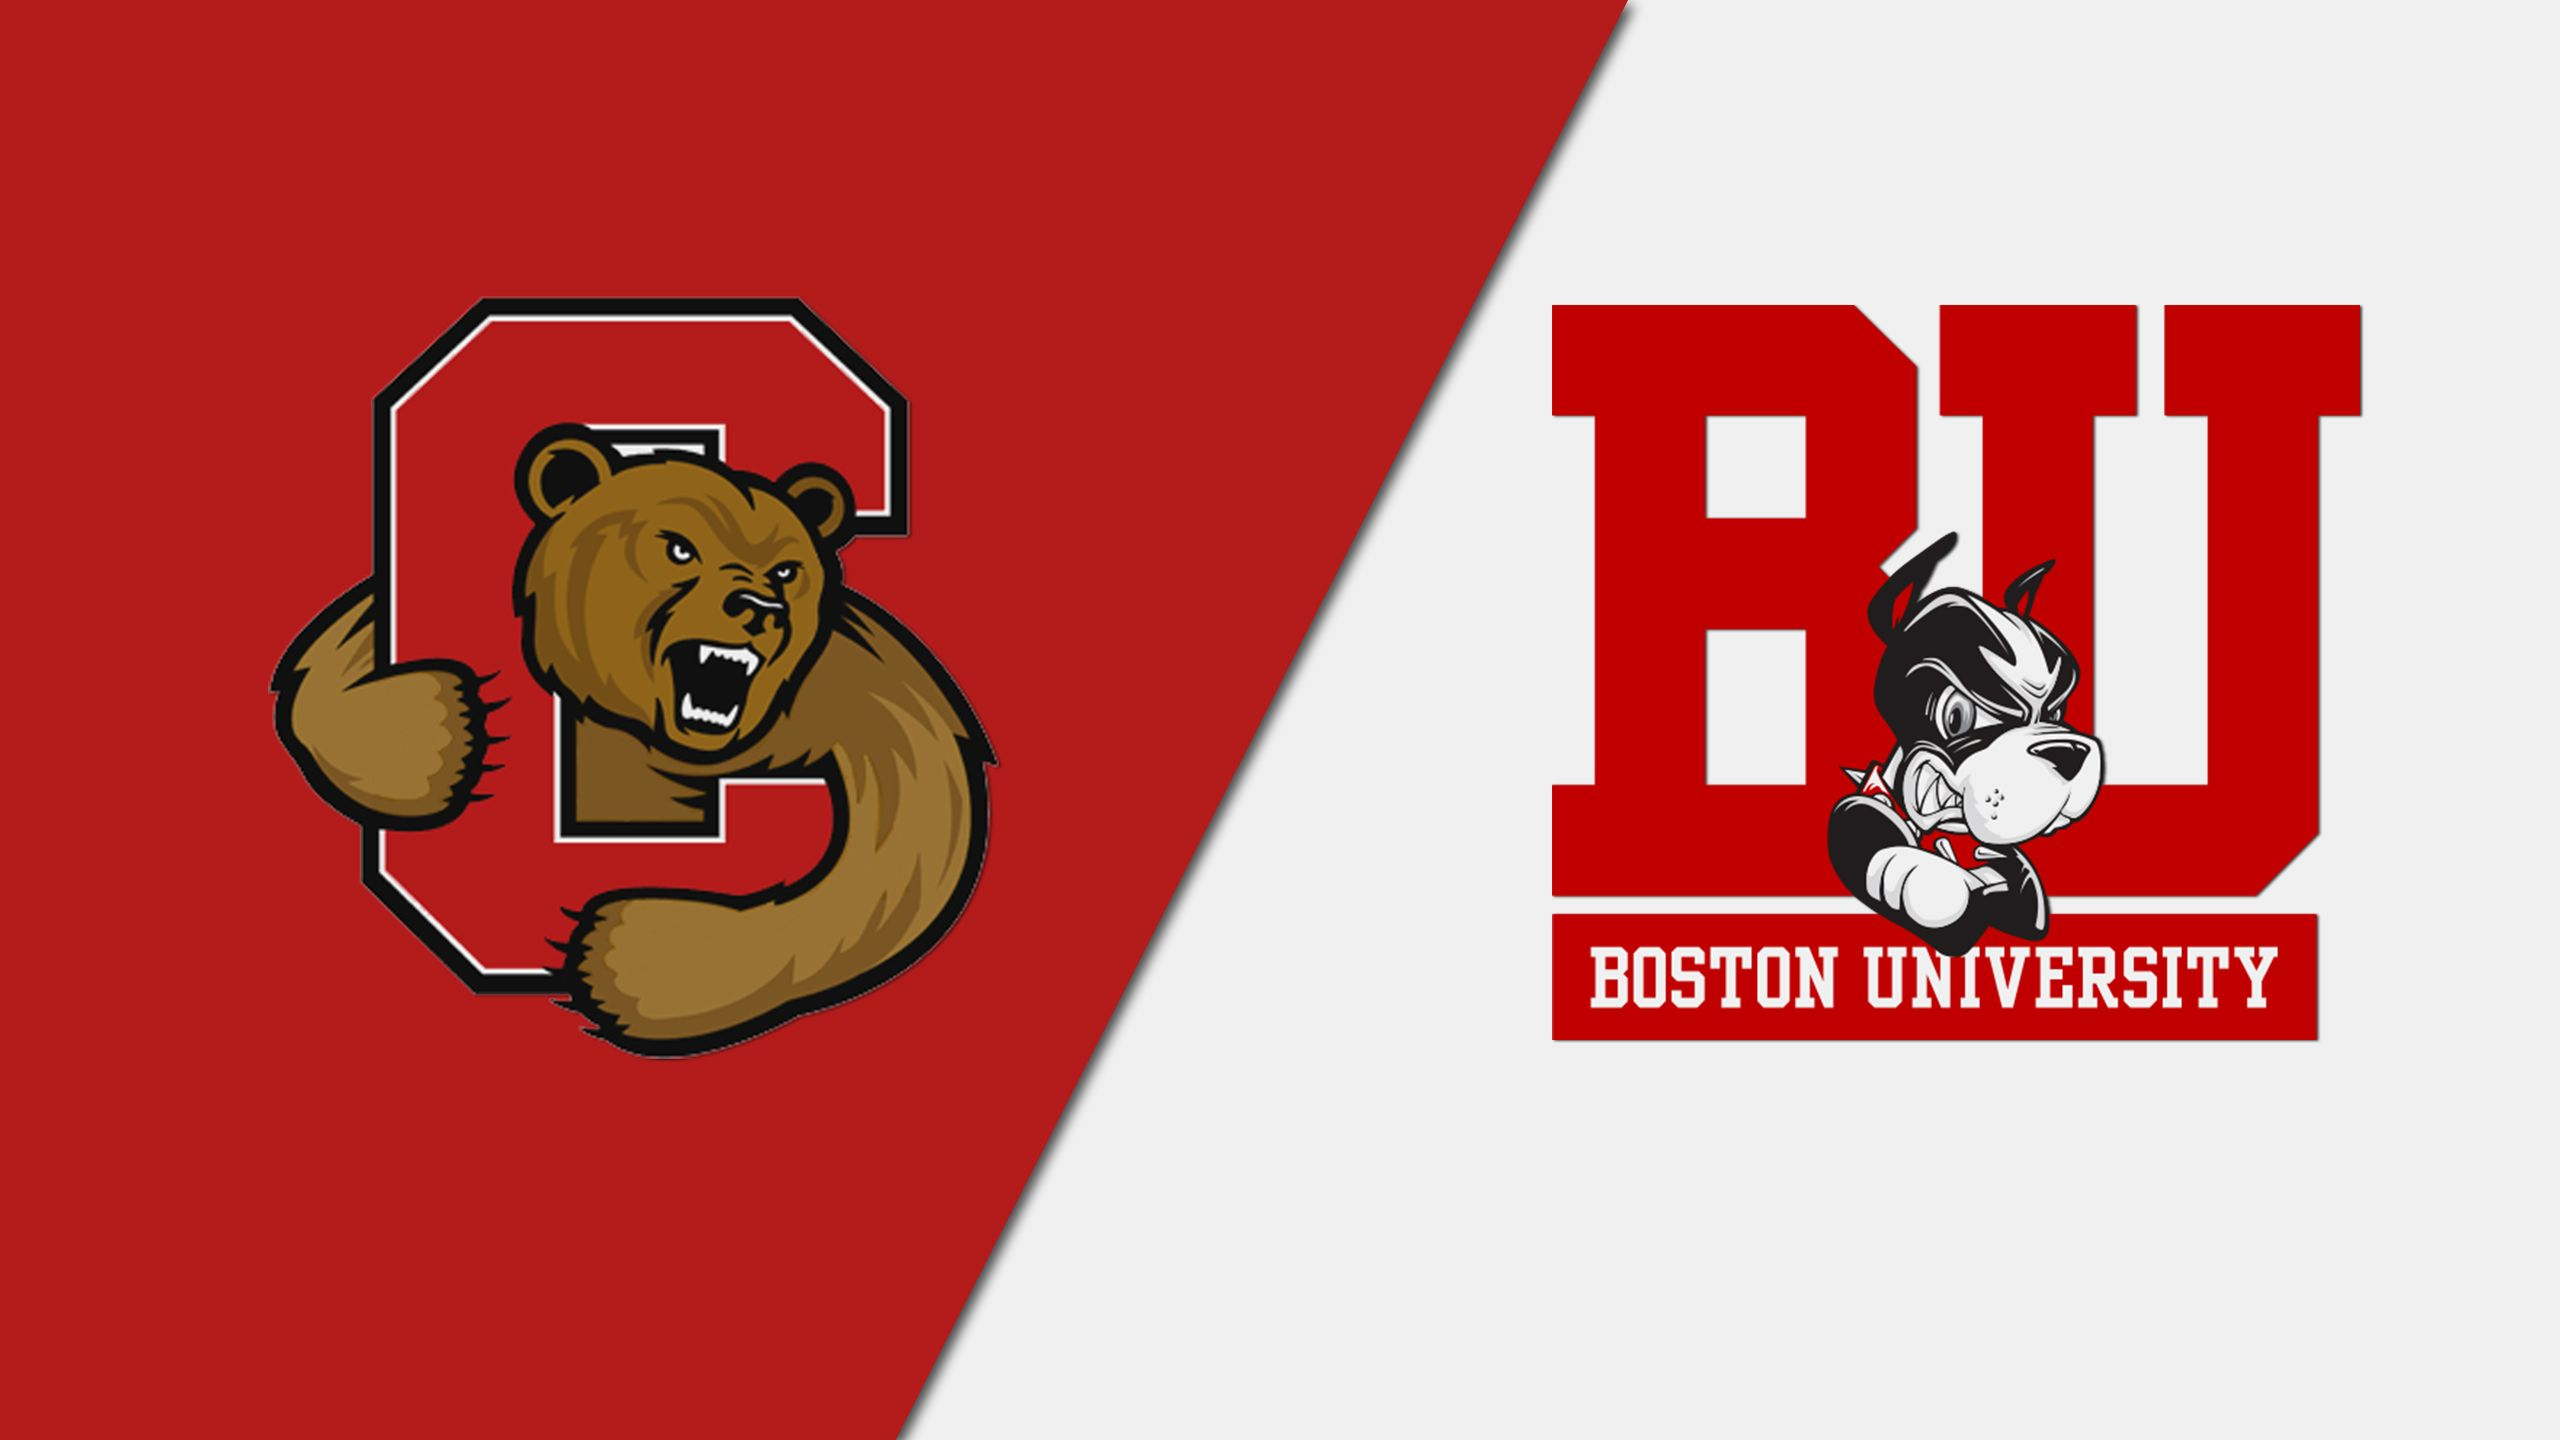 #1 Cornell vs. #4 Boston University (Northeast Regional Semifinal #1) (NCAA Men's Hockey Championship)